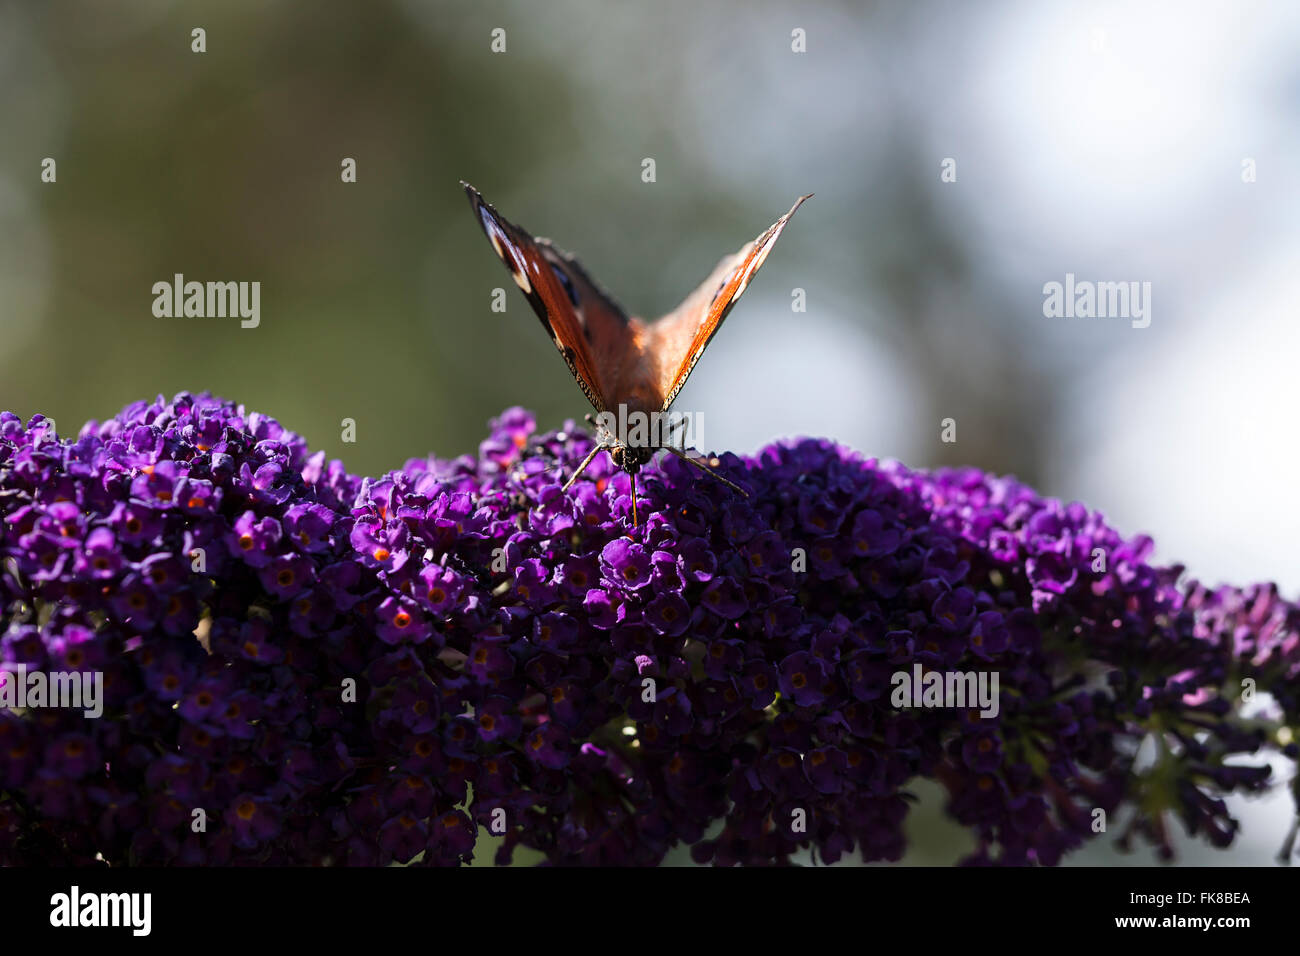 Brown butterfly on flower - Stock Image